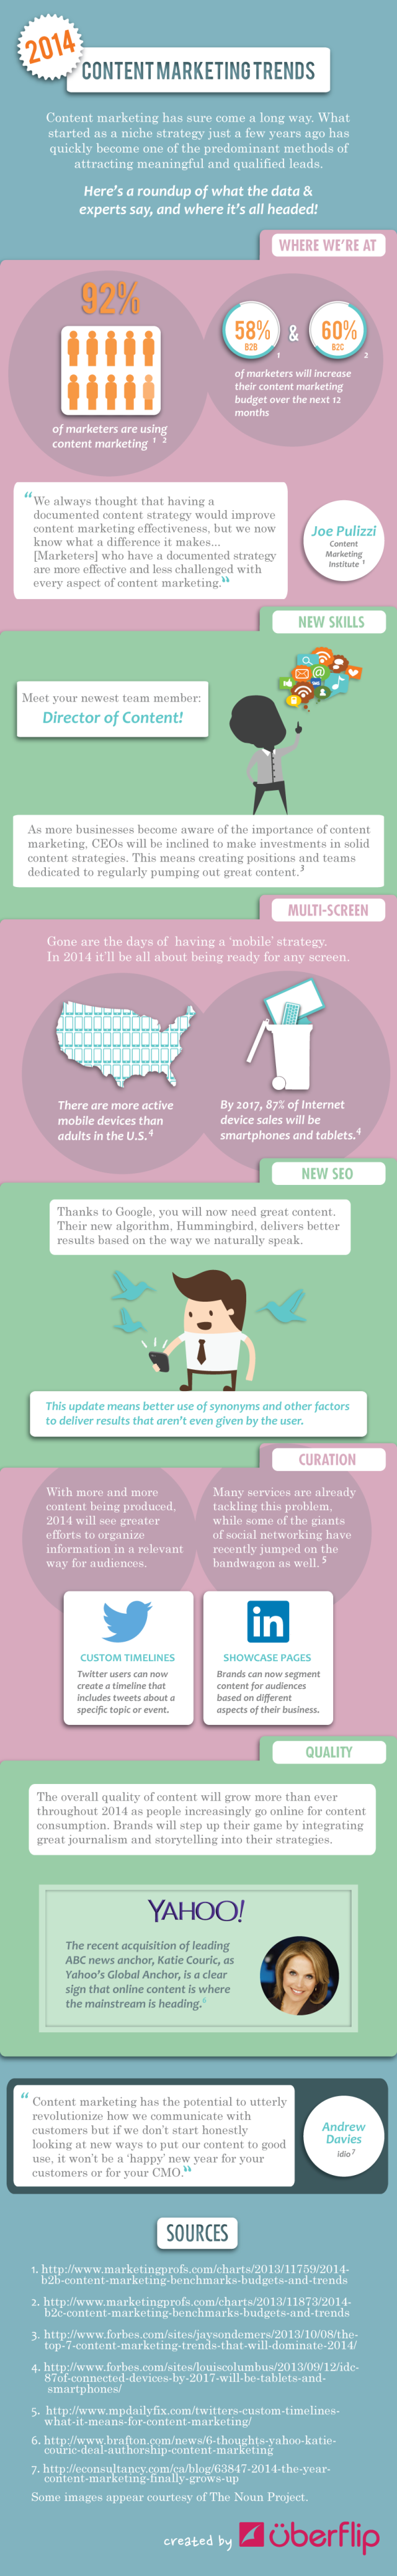 2014-content-marketing-trends-infographic